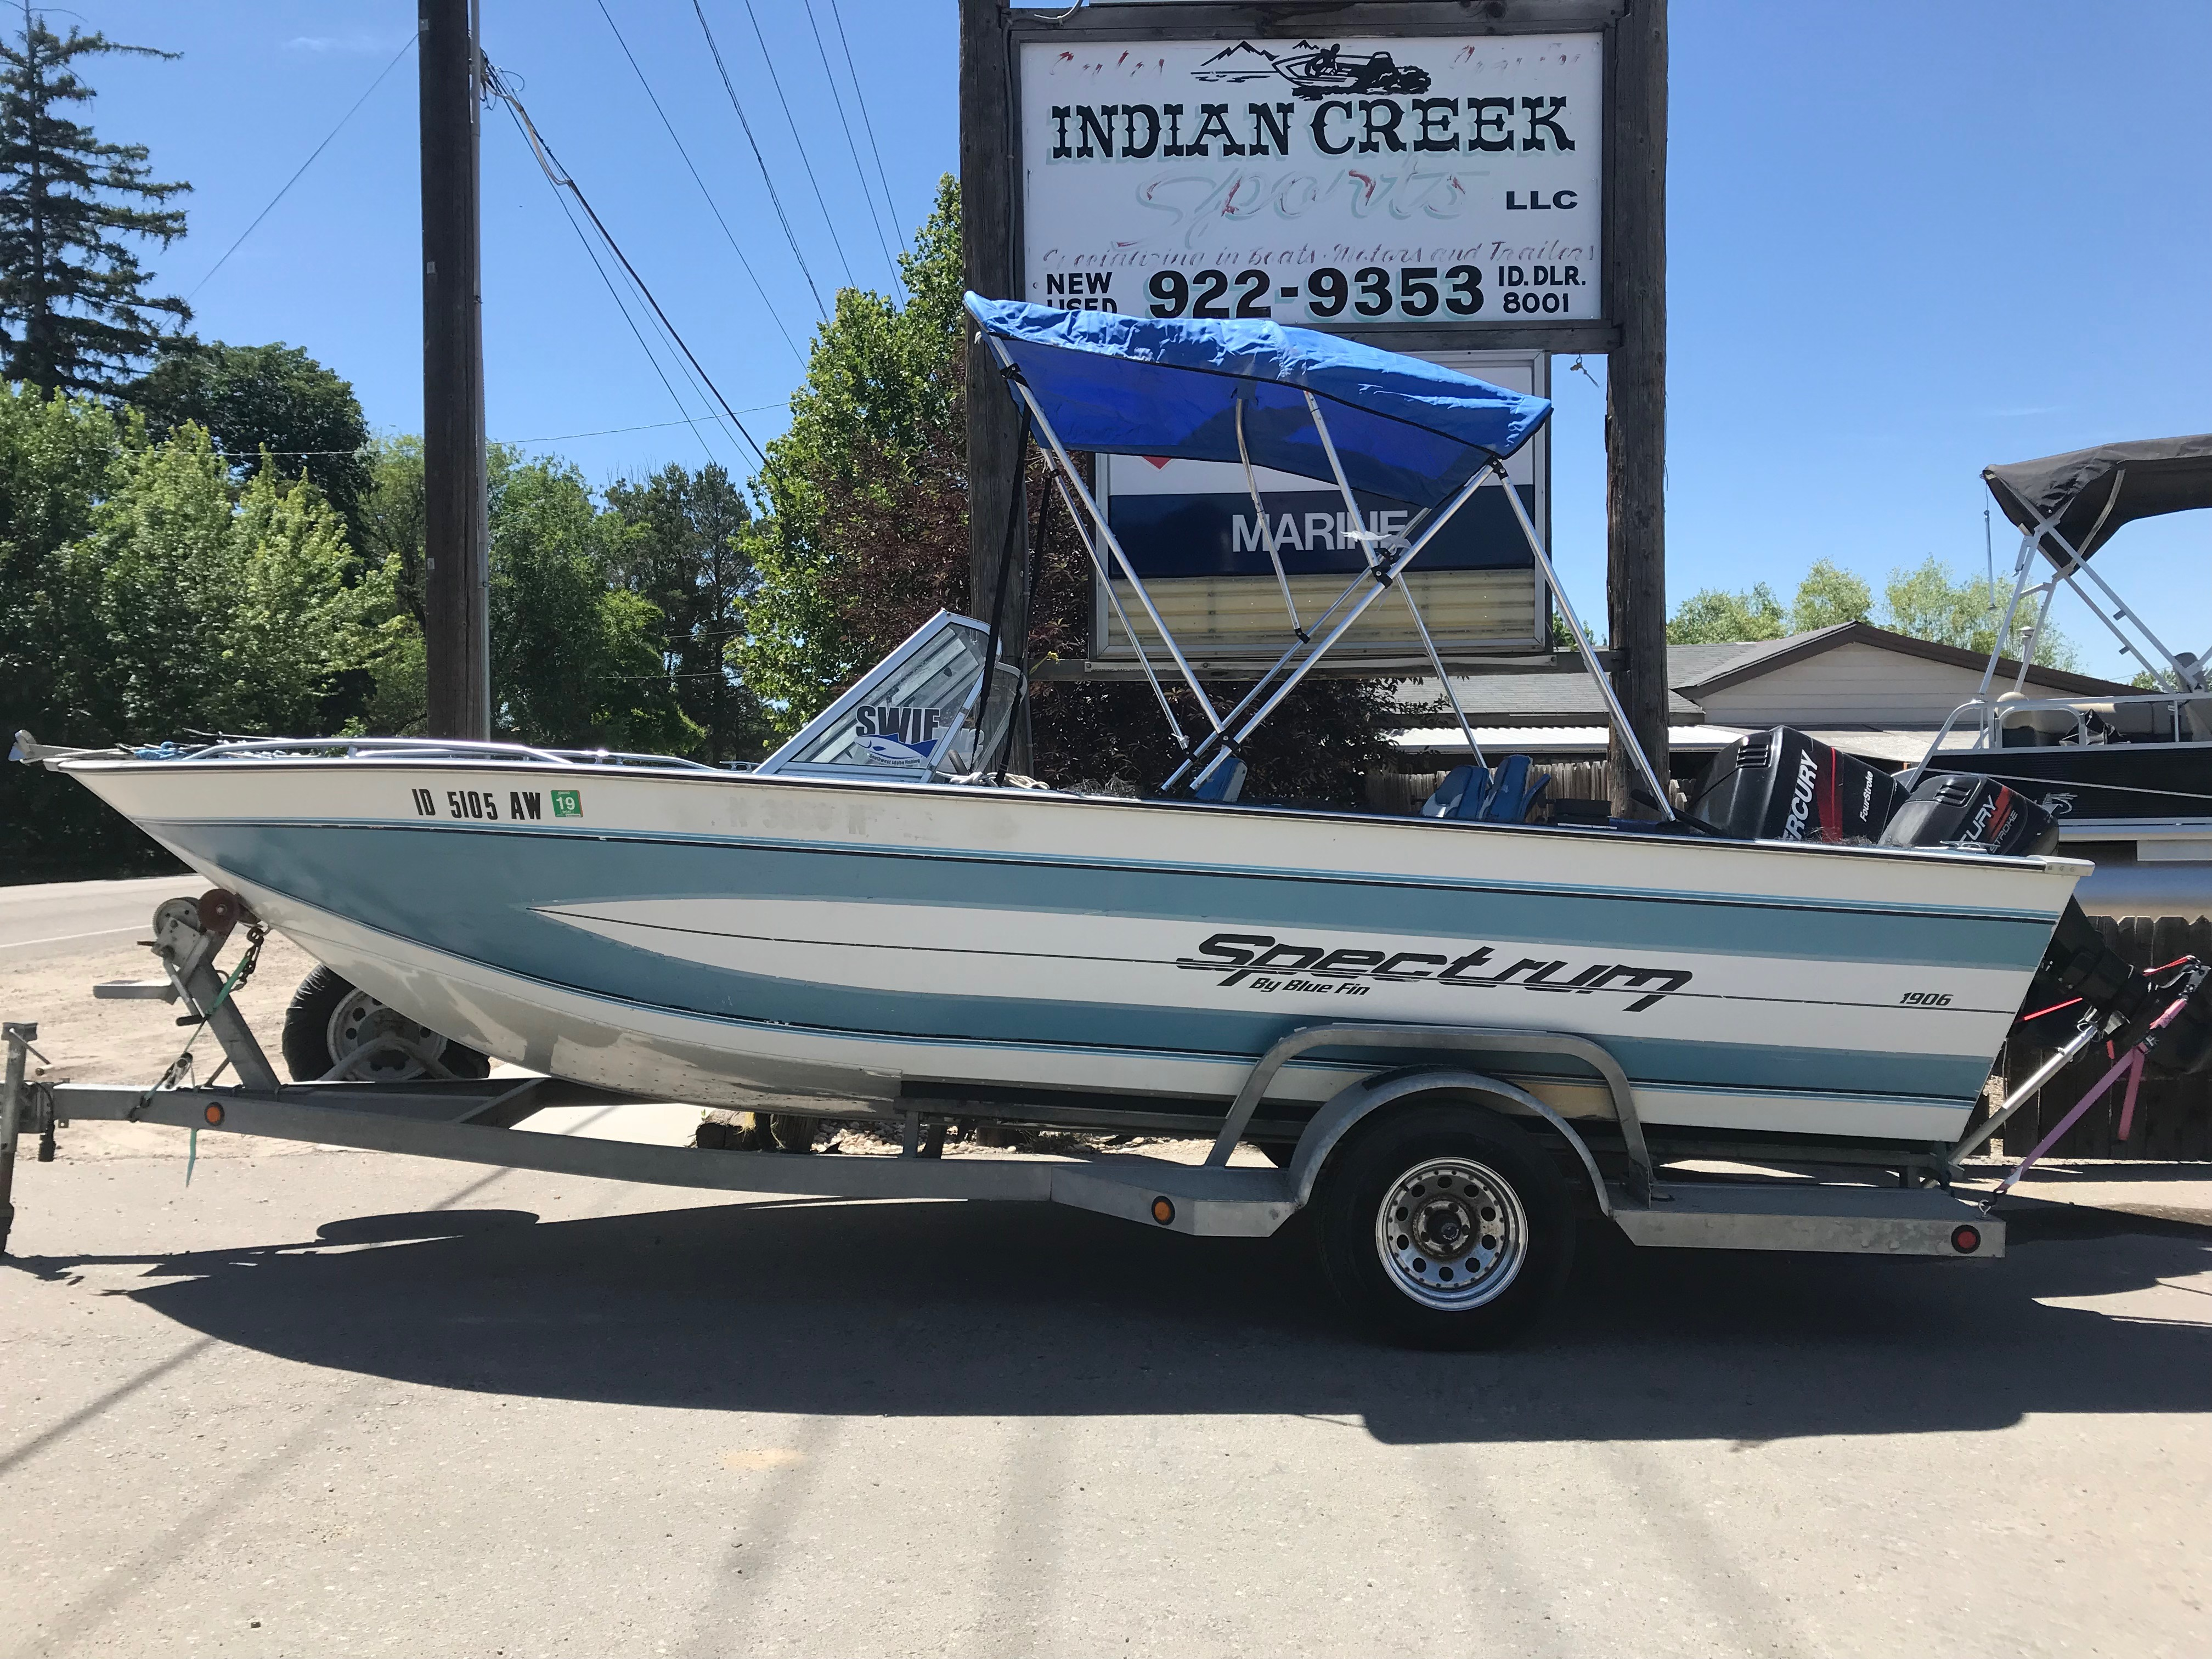 Pre-Owned Boats in Kuna ID | Used Boats Indian Creek Sports